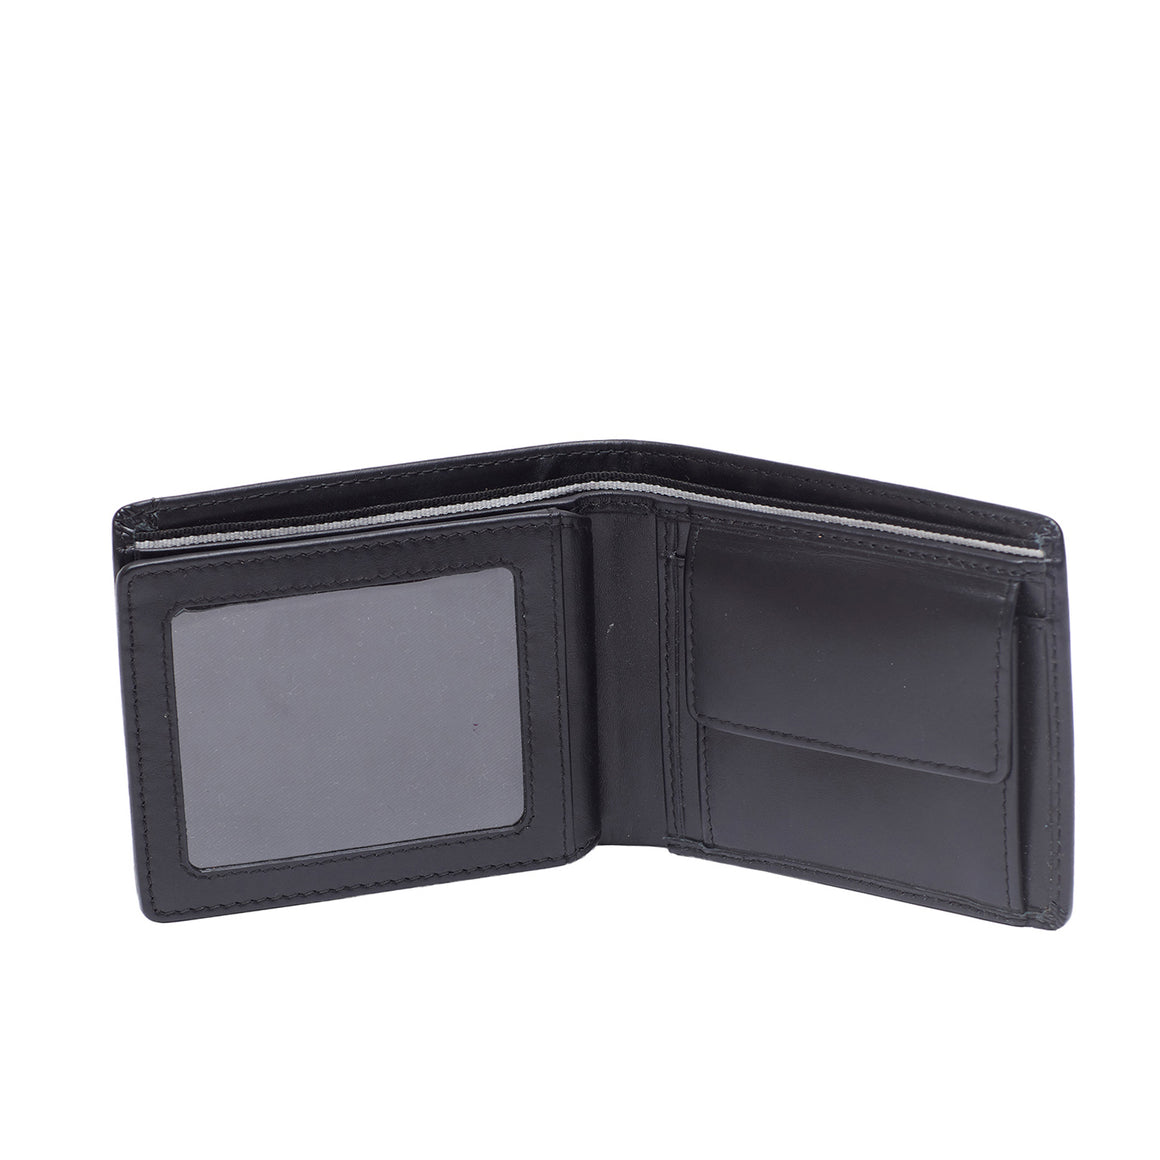 WT 0027 - TOHL GREKO MEN'S WALLET - CHARCOAL BLACK